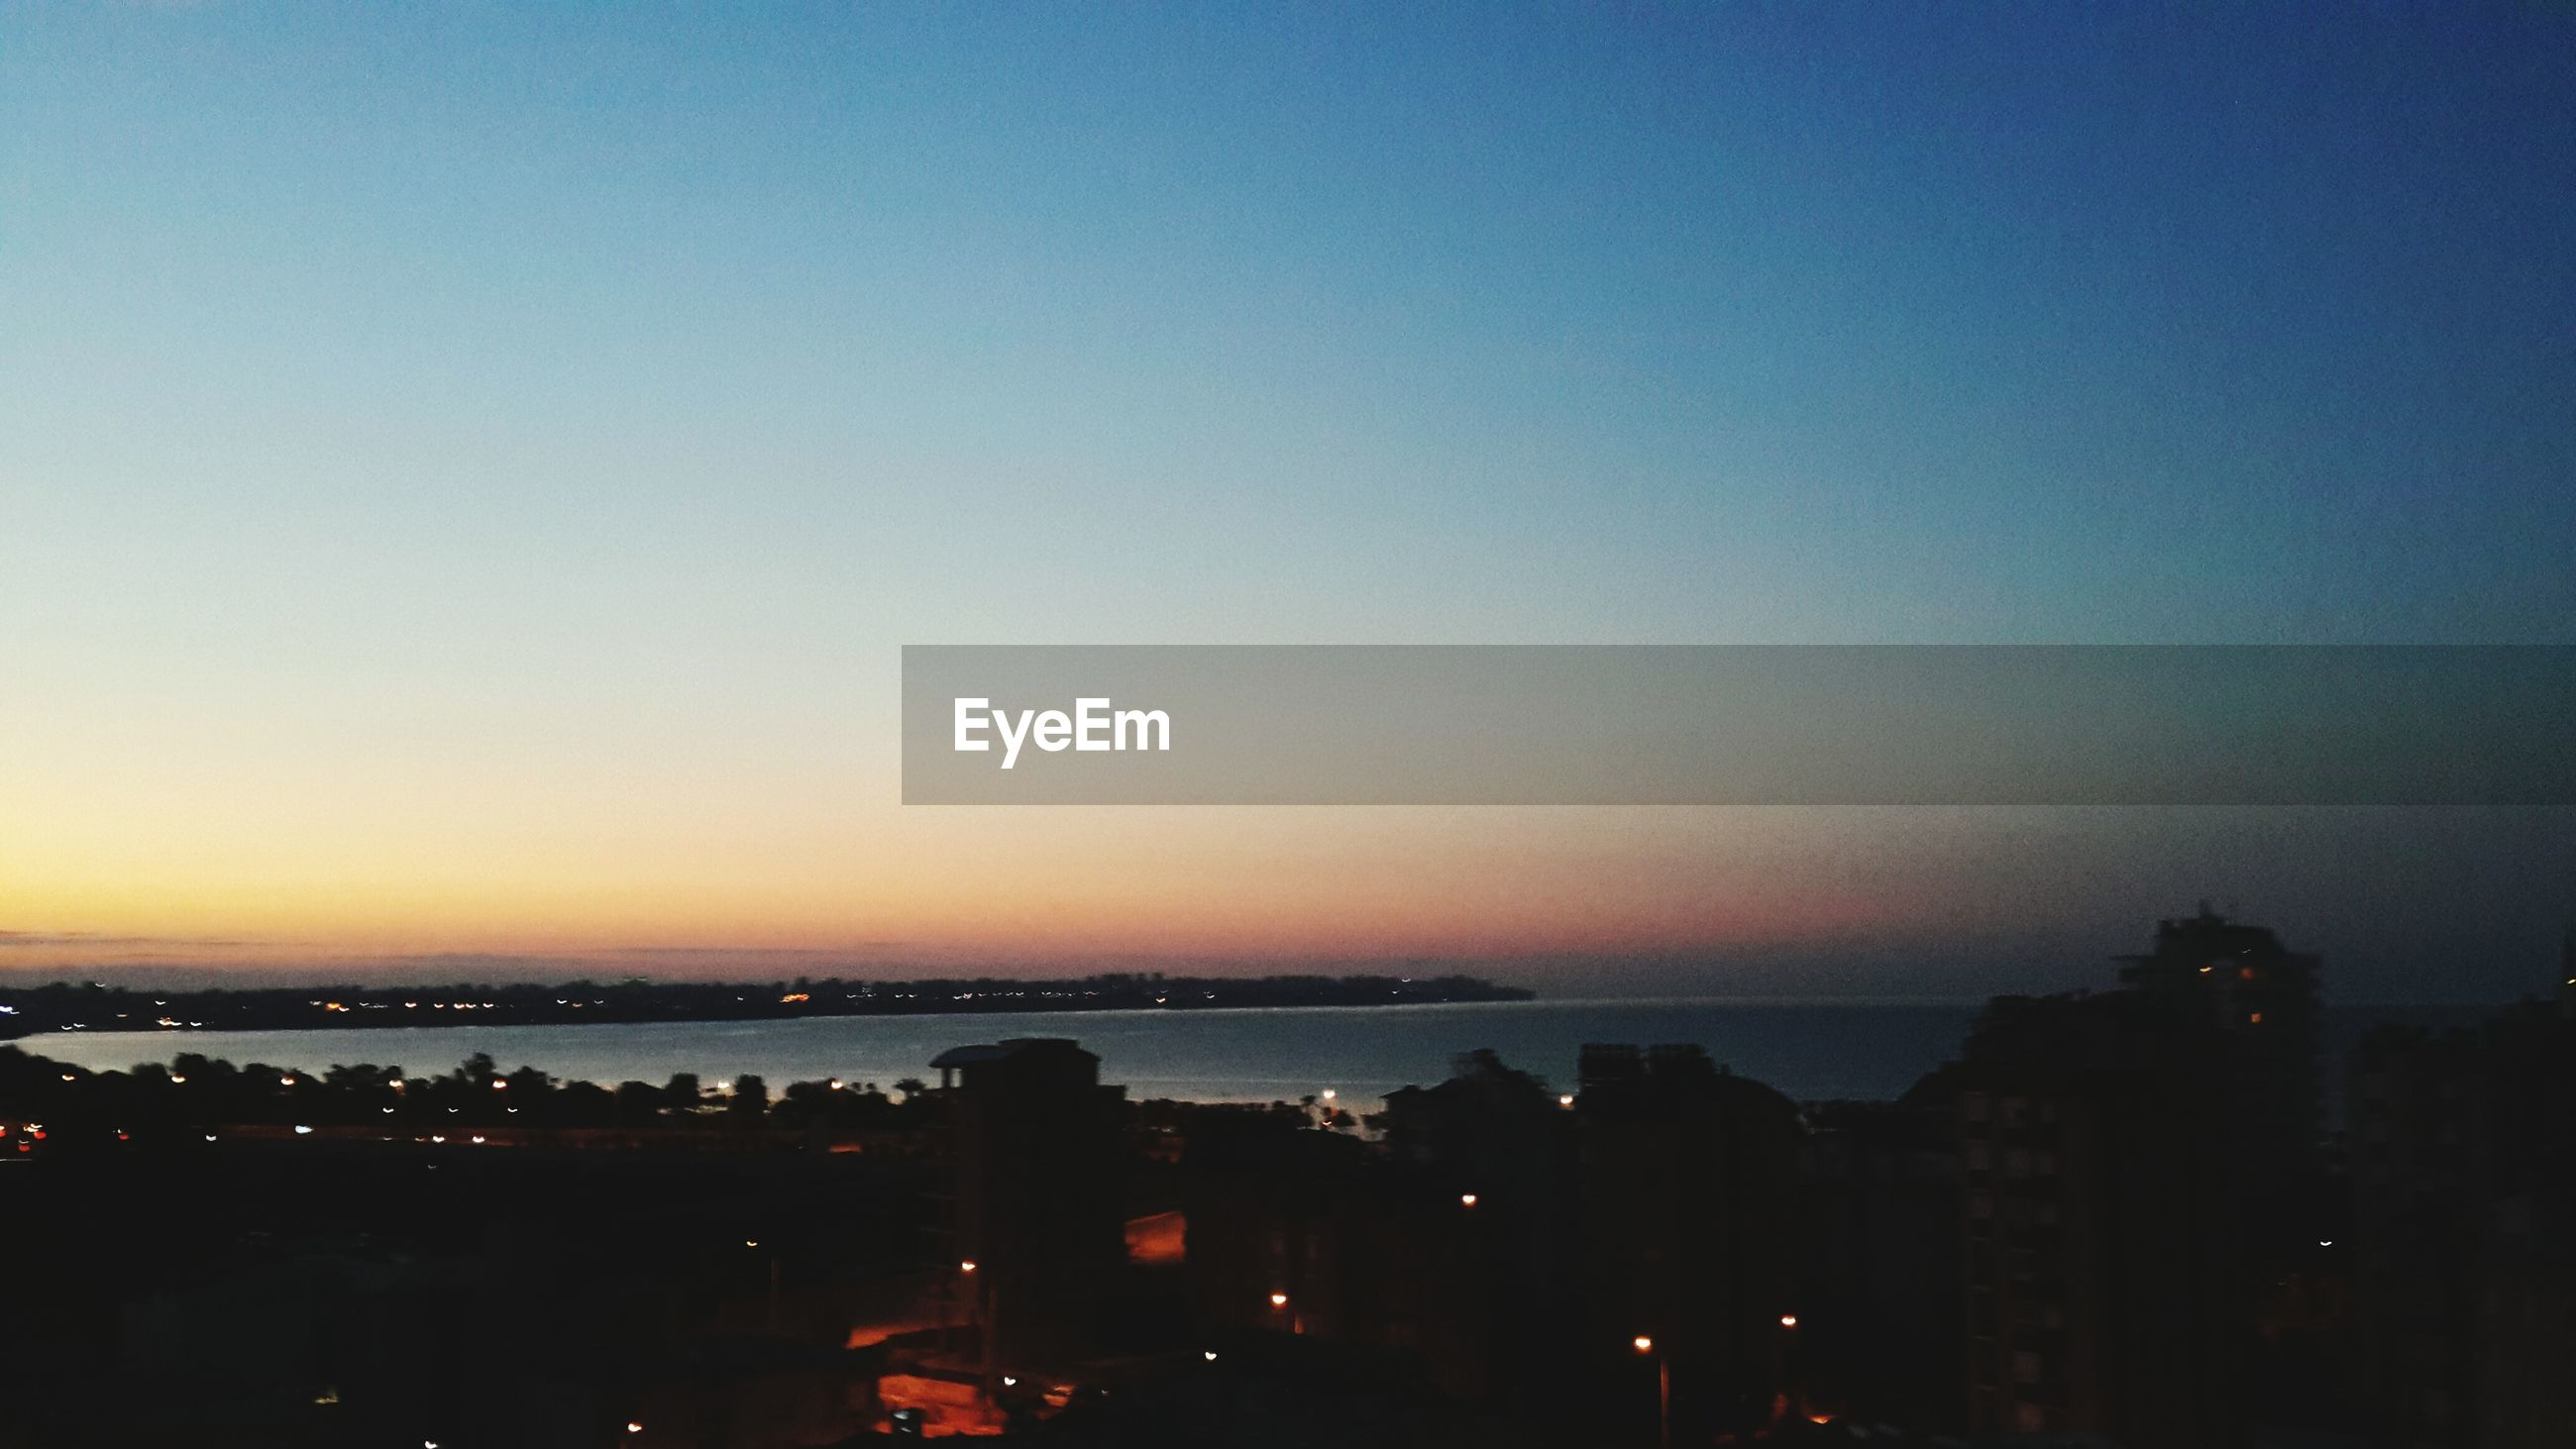 cityscape, city, building exterior, copy space, architecture, built structure, clear sky, sunset, illuminated, sea, water, crowded, high angle view, dusk, residential district, sky, scenics, residential building, residential structure, outdoors